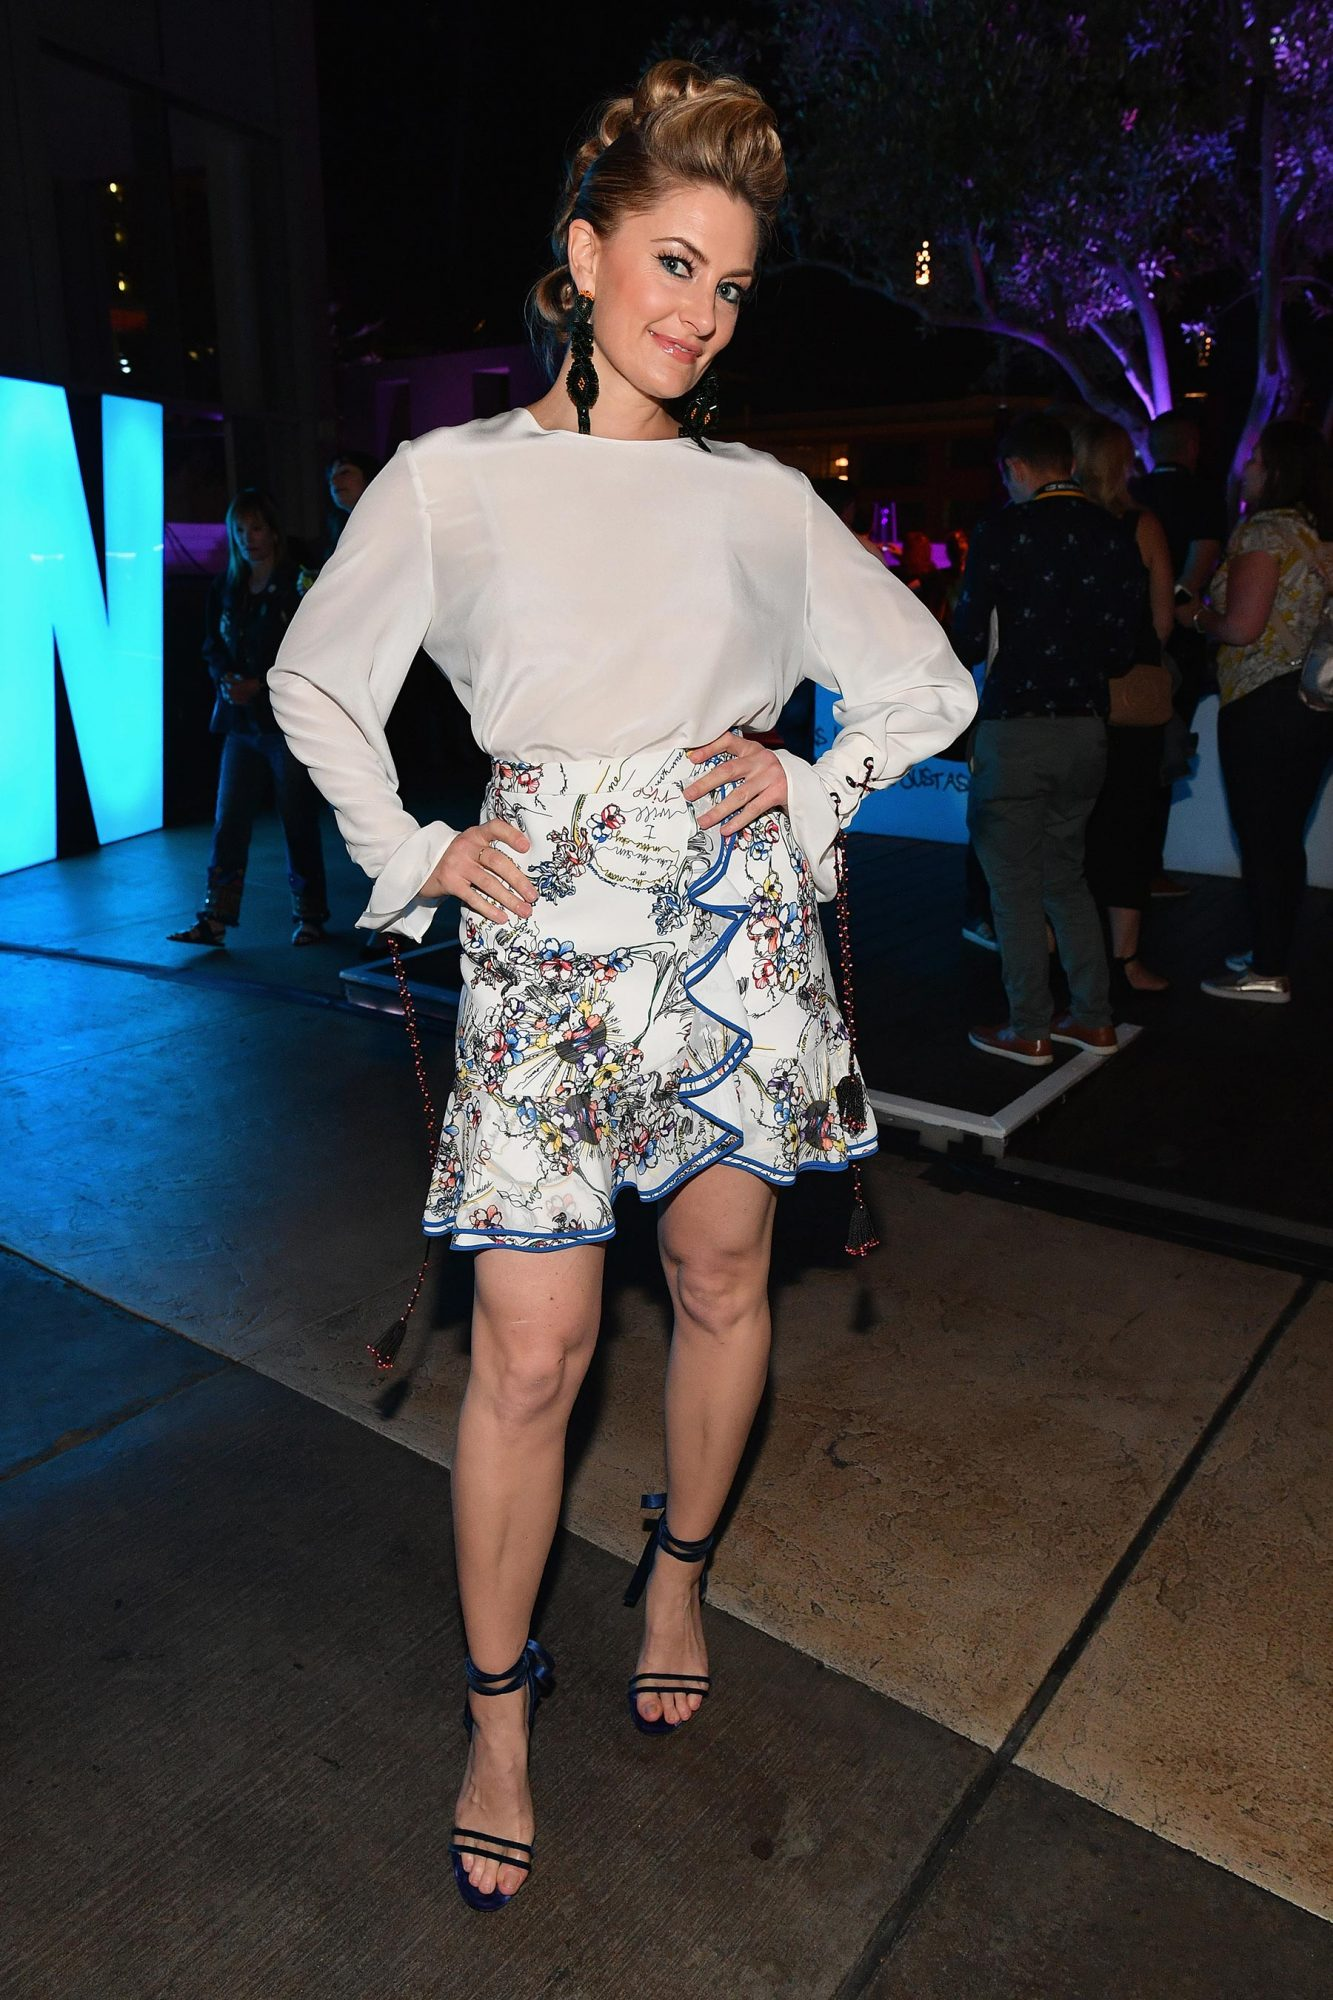 Entertainment Weekly Hosts Its Annual Comic-Con Party At FLOAT At The Hard Rock Hotel In San Diego In Celebration Of Comic-Con 2018 - Inside